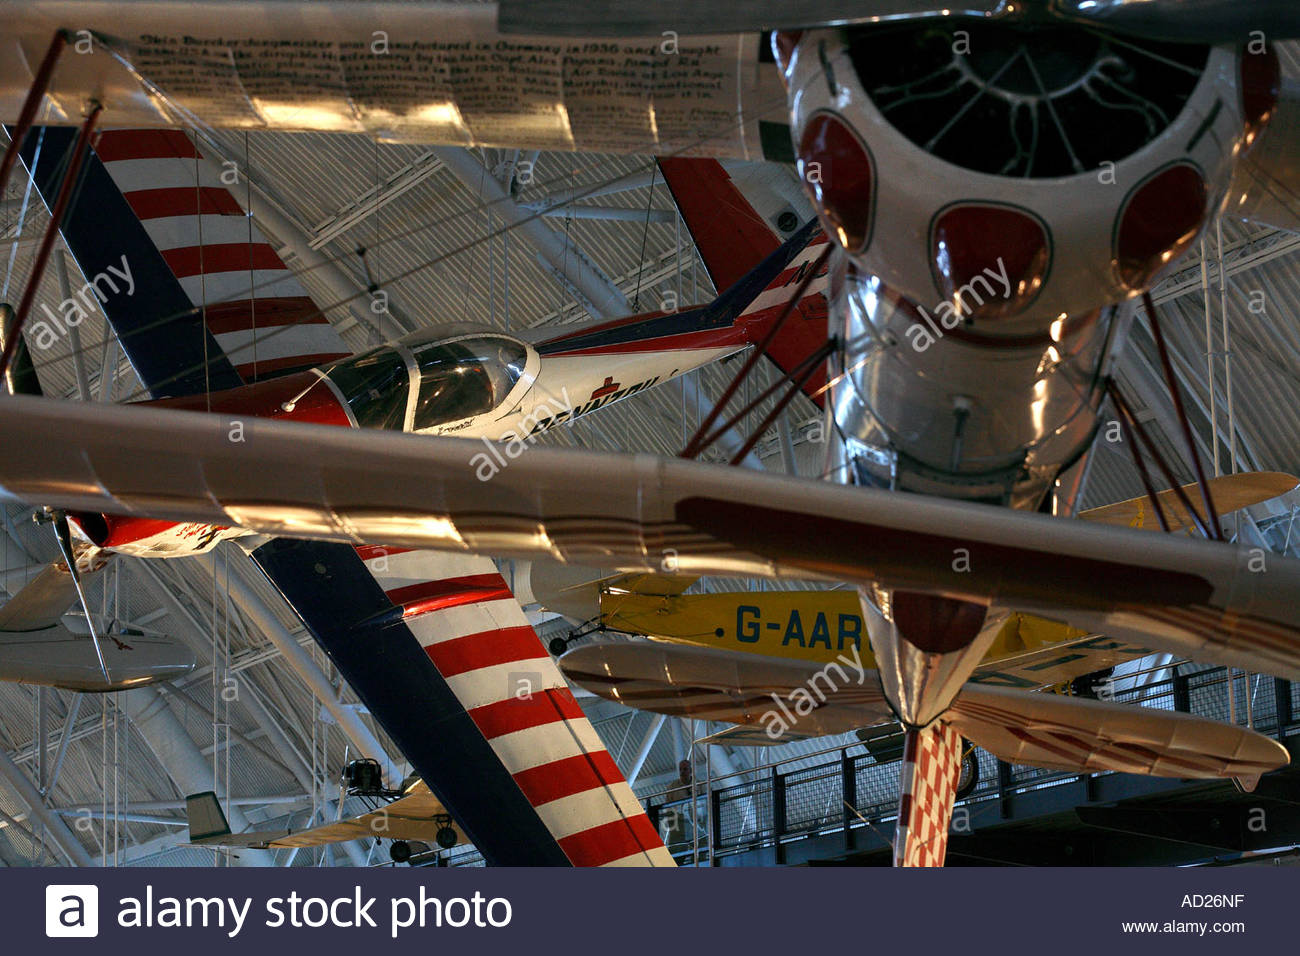 Jungmeister and Pennzoil Special aircraft on display at the Steven Udvar-Hazy Center - Stock Image